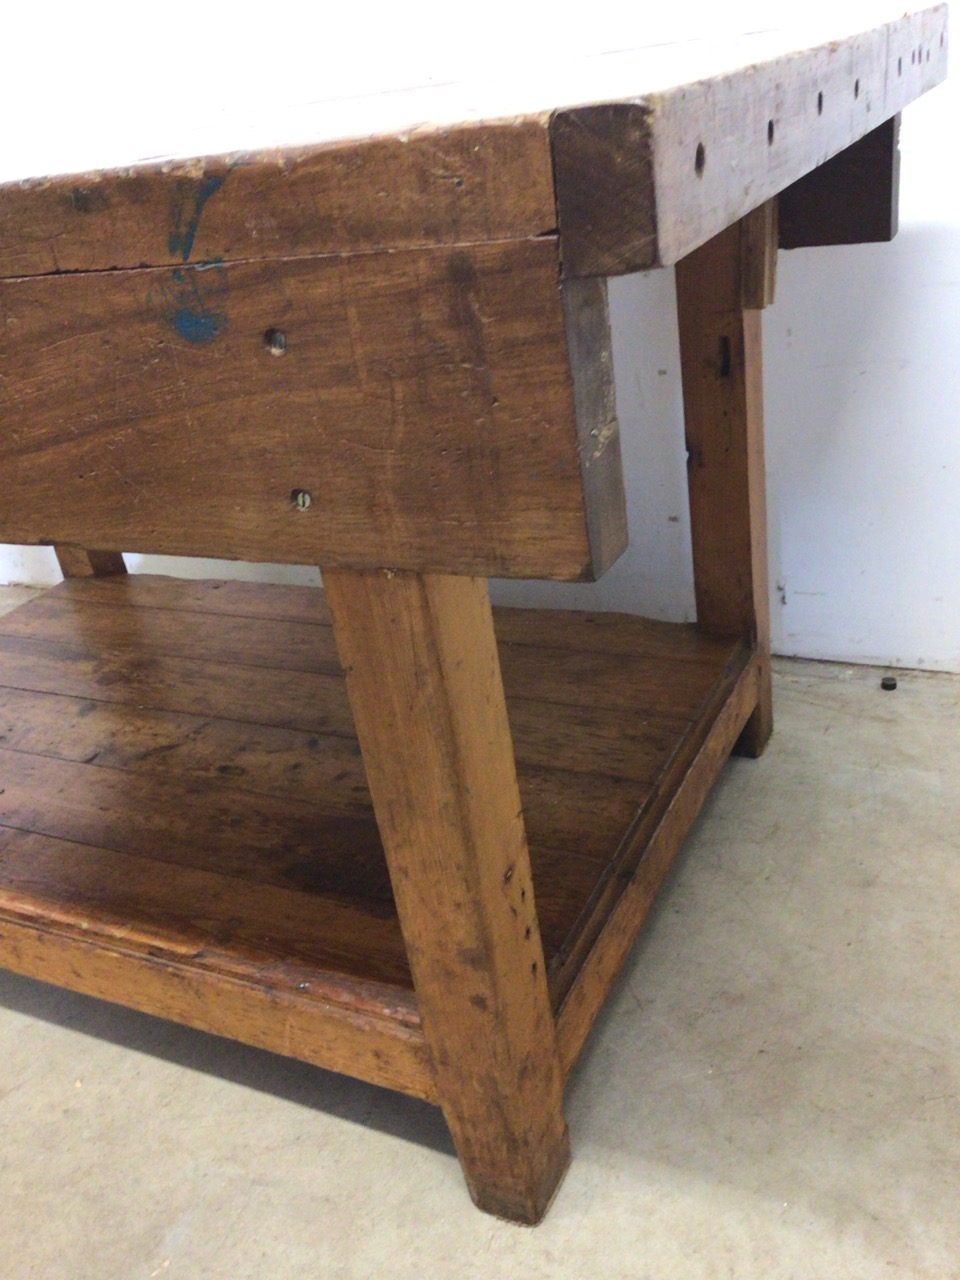 An antique Hardwood workbench with two vices and a lower shelf. W:140cm x D:85cm x H:78cm - Image 3 of 6